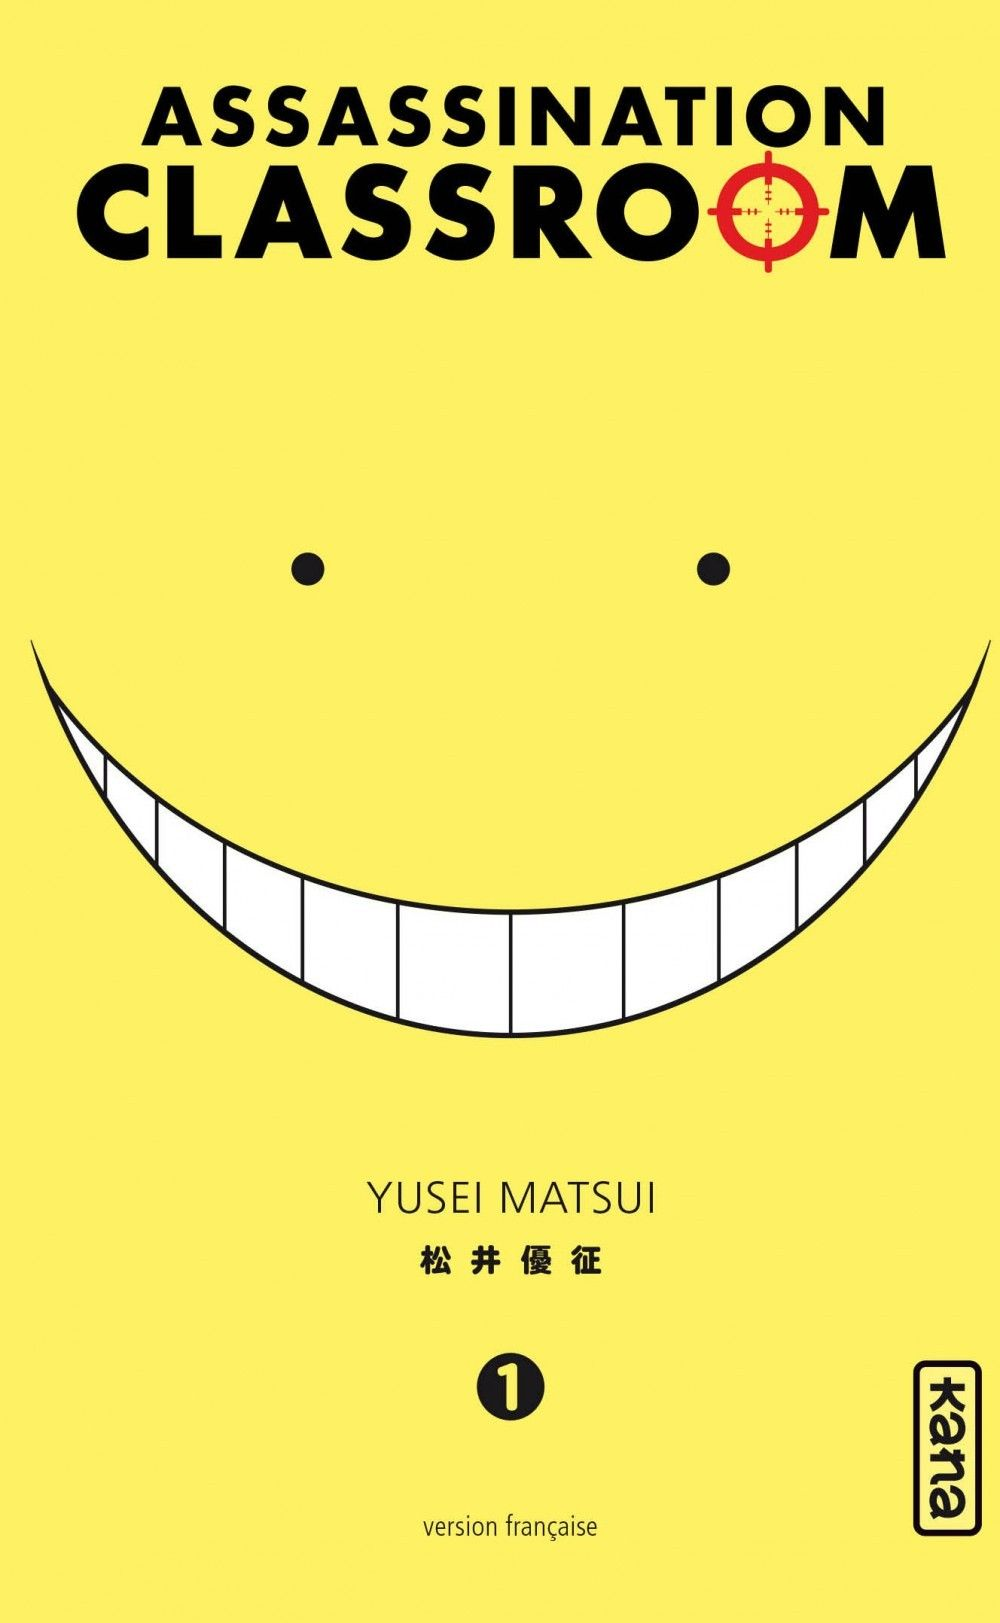 Bildergebnis für assassination classroom manga cover